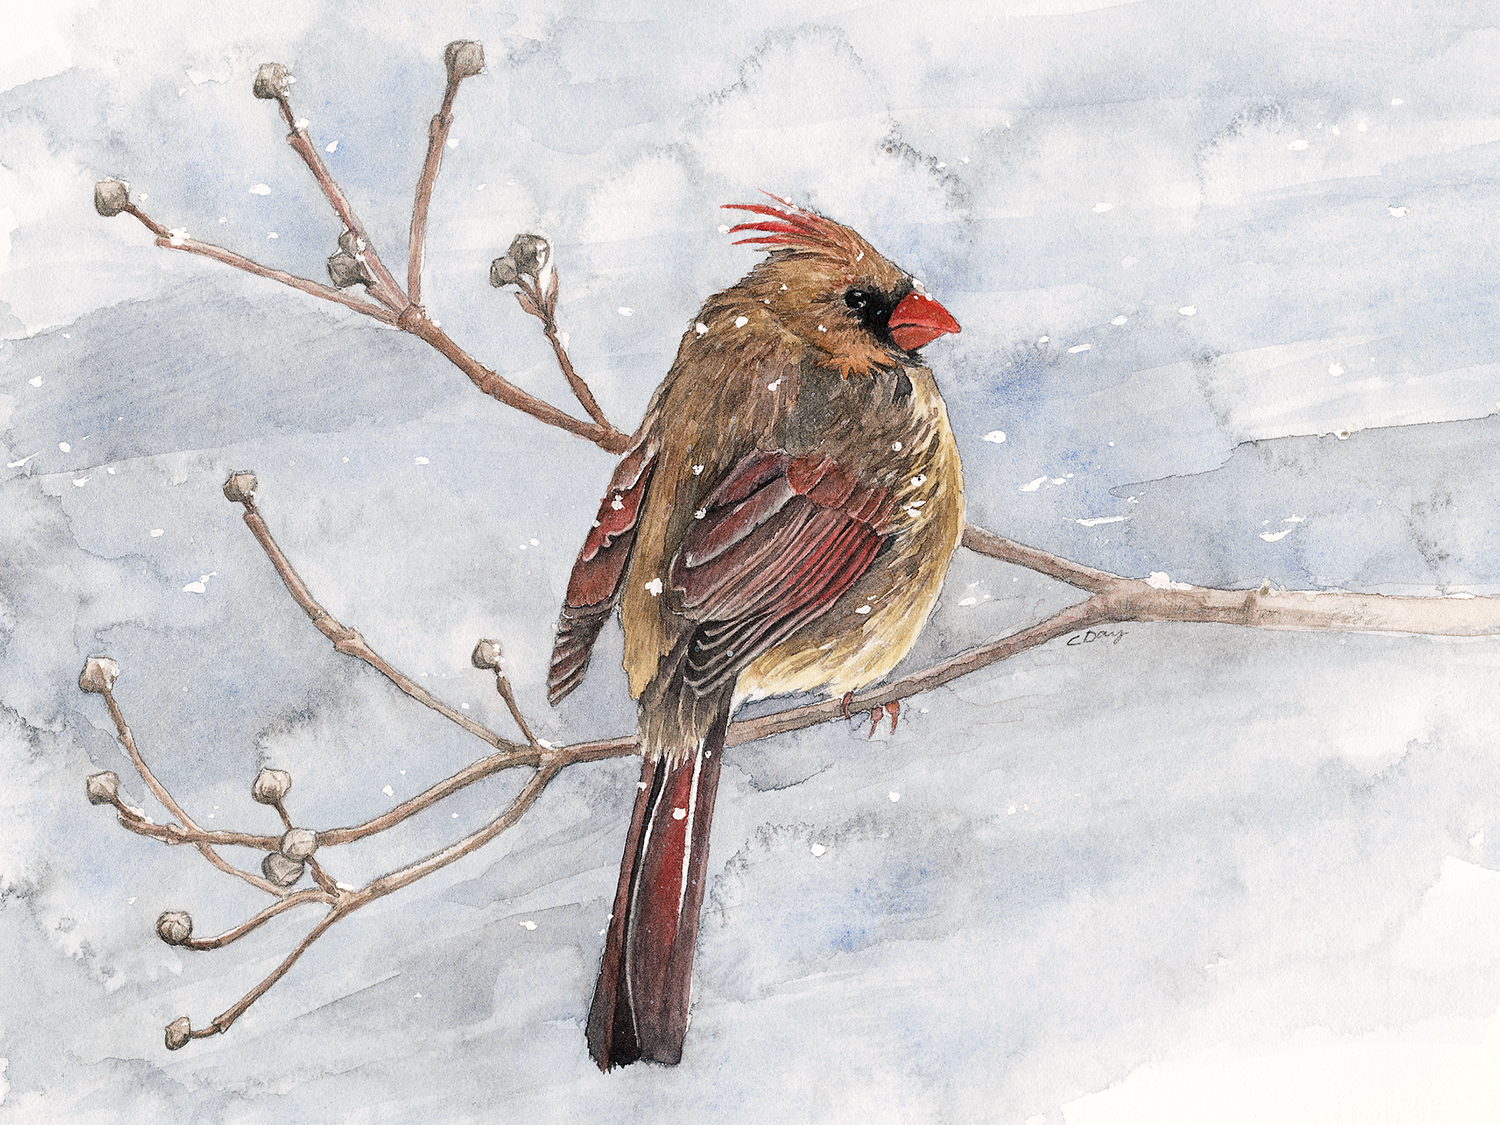 Cardinal on a Winters' Day